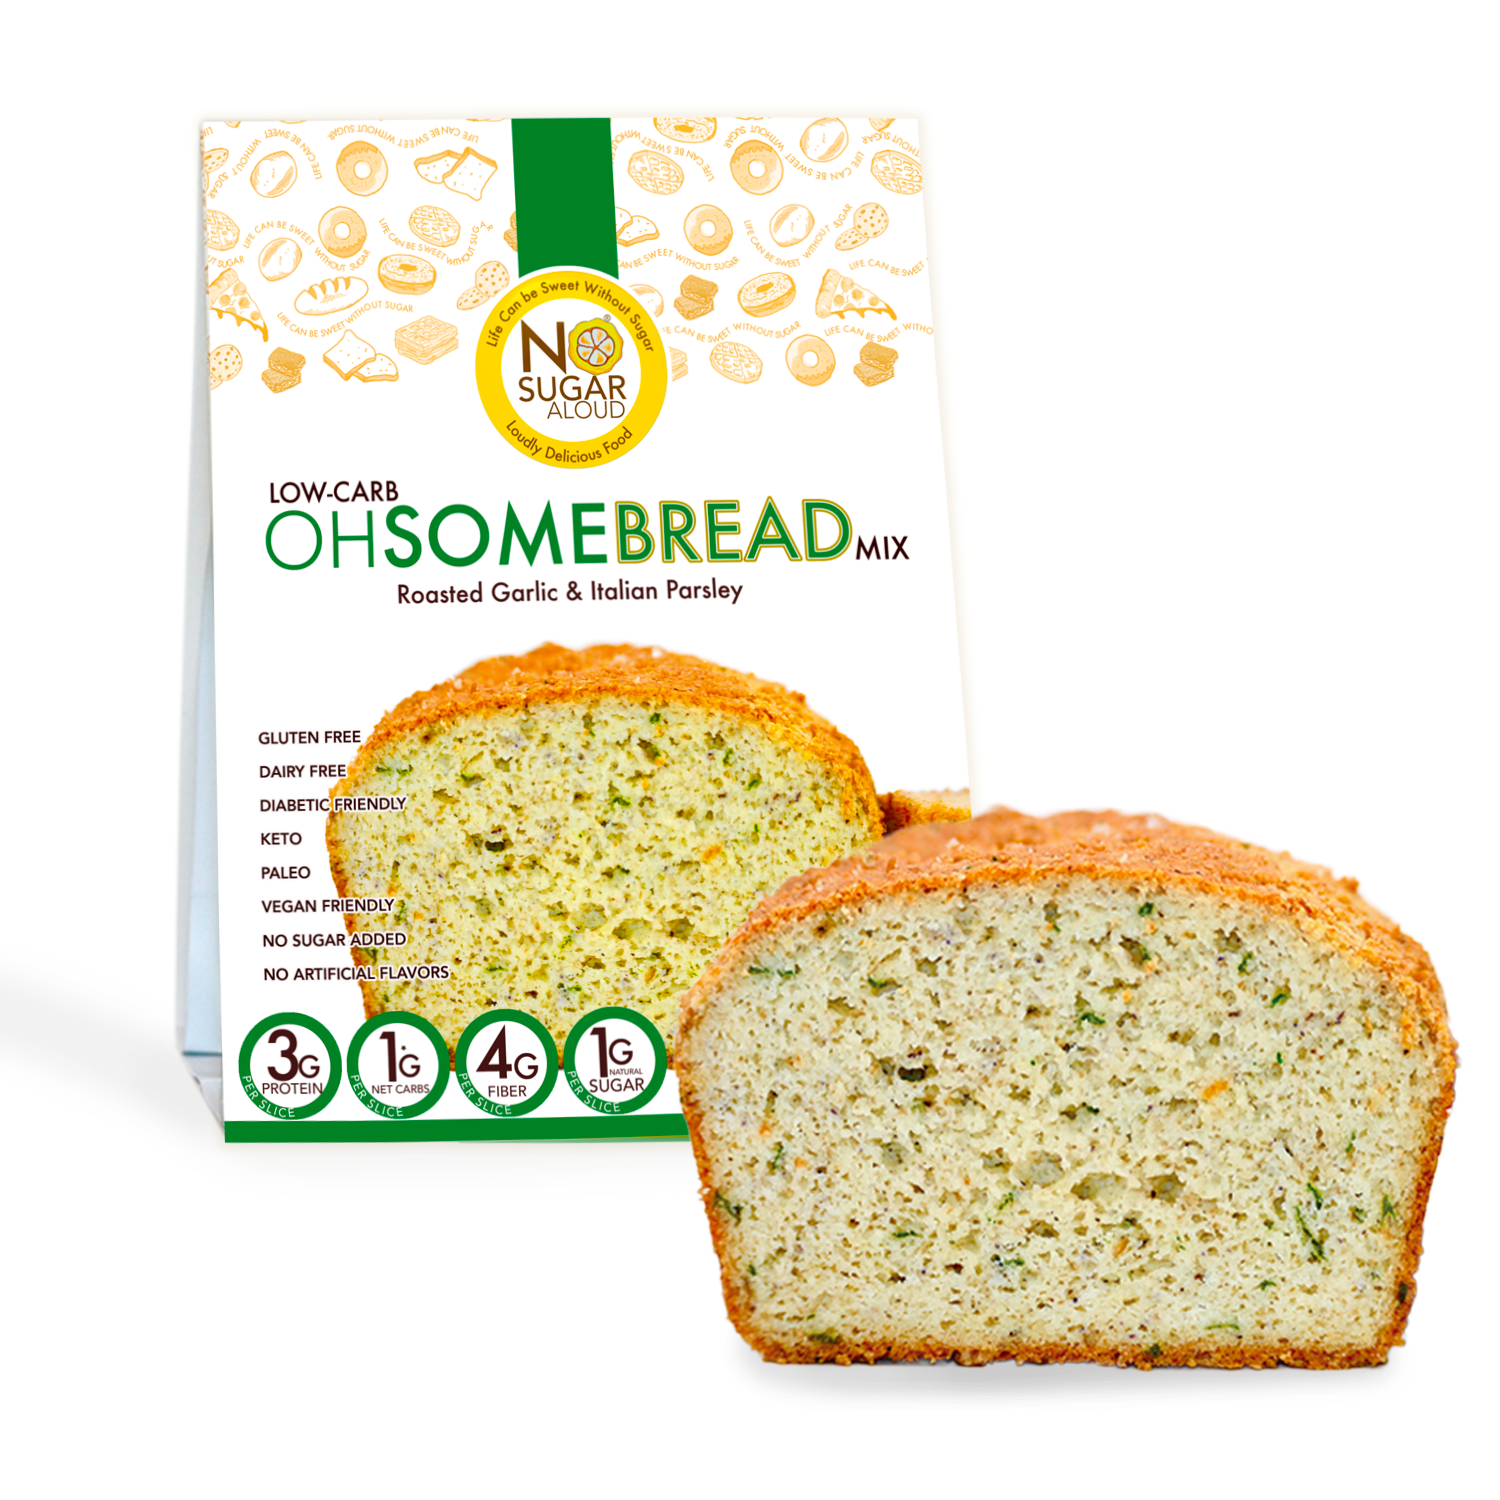 Low Carb OhSome Bread - Roasted Garlic Mix   Trada Marketplace